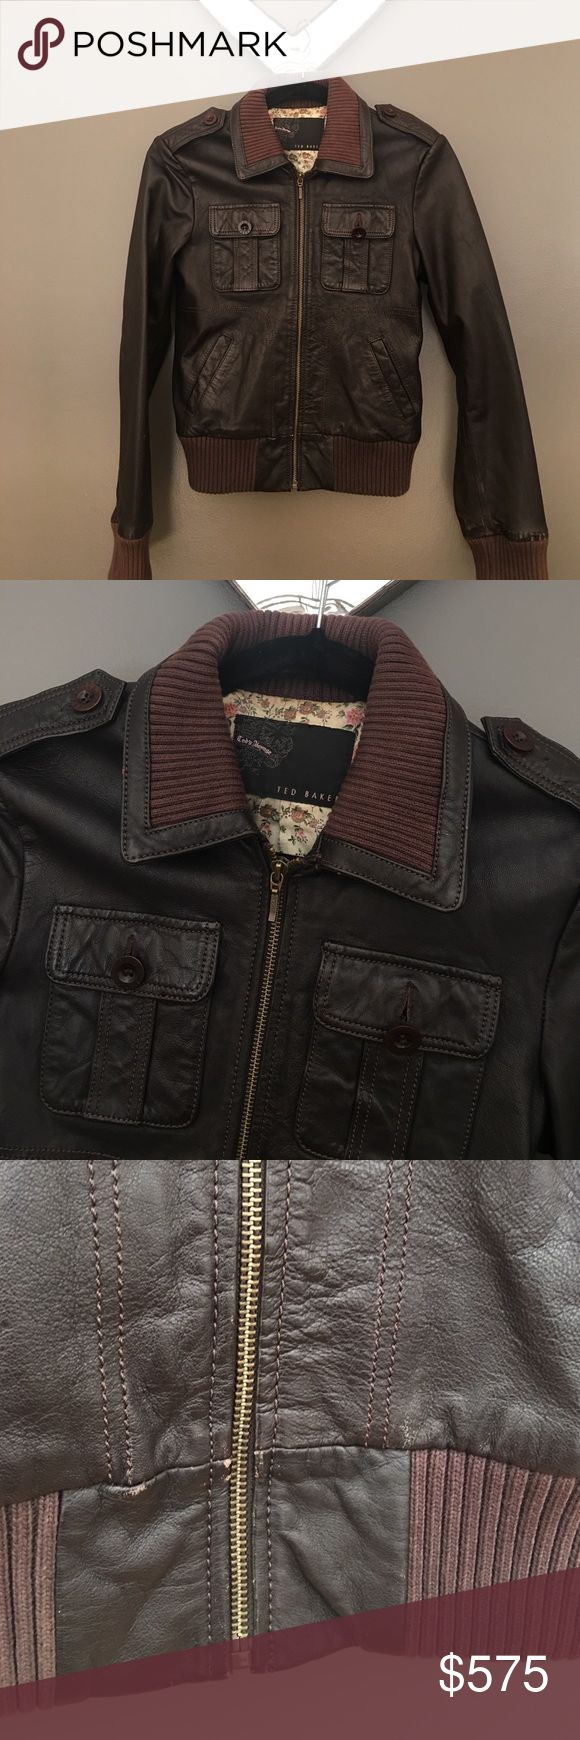 Ted Baker Leather Bomber Jacket Deep brown thick leather jacket with ribbing detail at collar, sleeves & waistline. Lined with a pretty floral print. Pre-loved but still in very excellent condition with few minor flaws. Left pocket button loose but can be easily sewed tightly & few leather scratches shown in pics. This jacket would wear nicely overtime and become nicely distressed. For reference I am 5'1 113 lbs 34C & 25/26waist Ted Baker Jackets & Coats